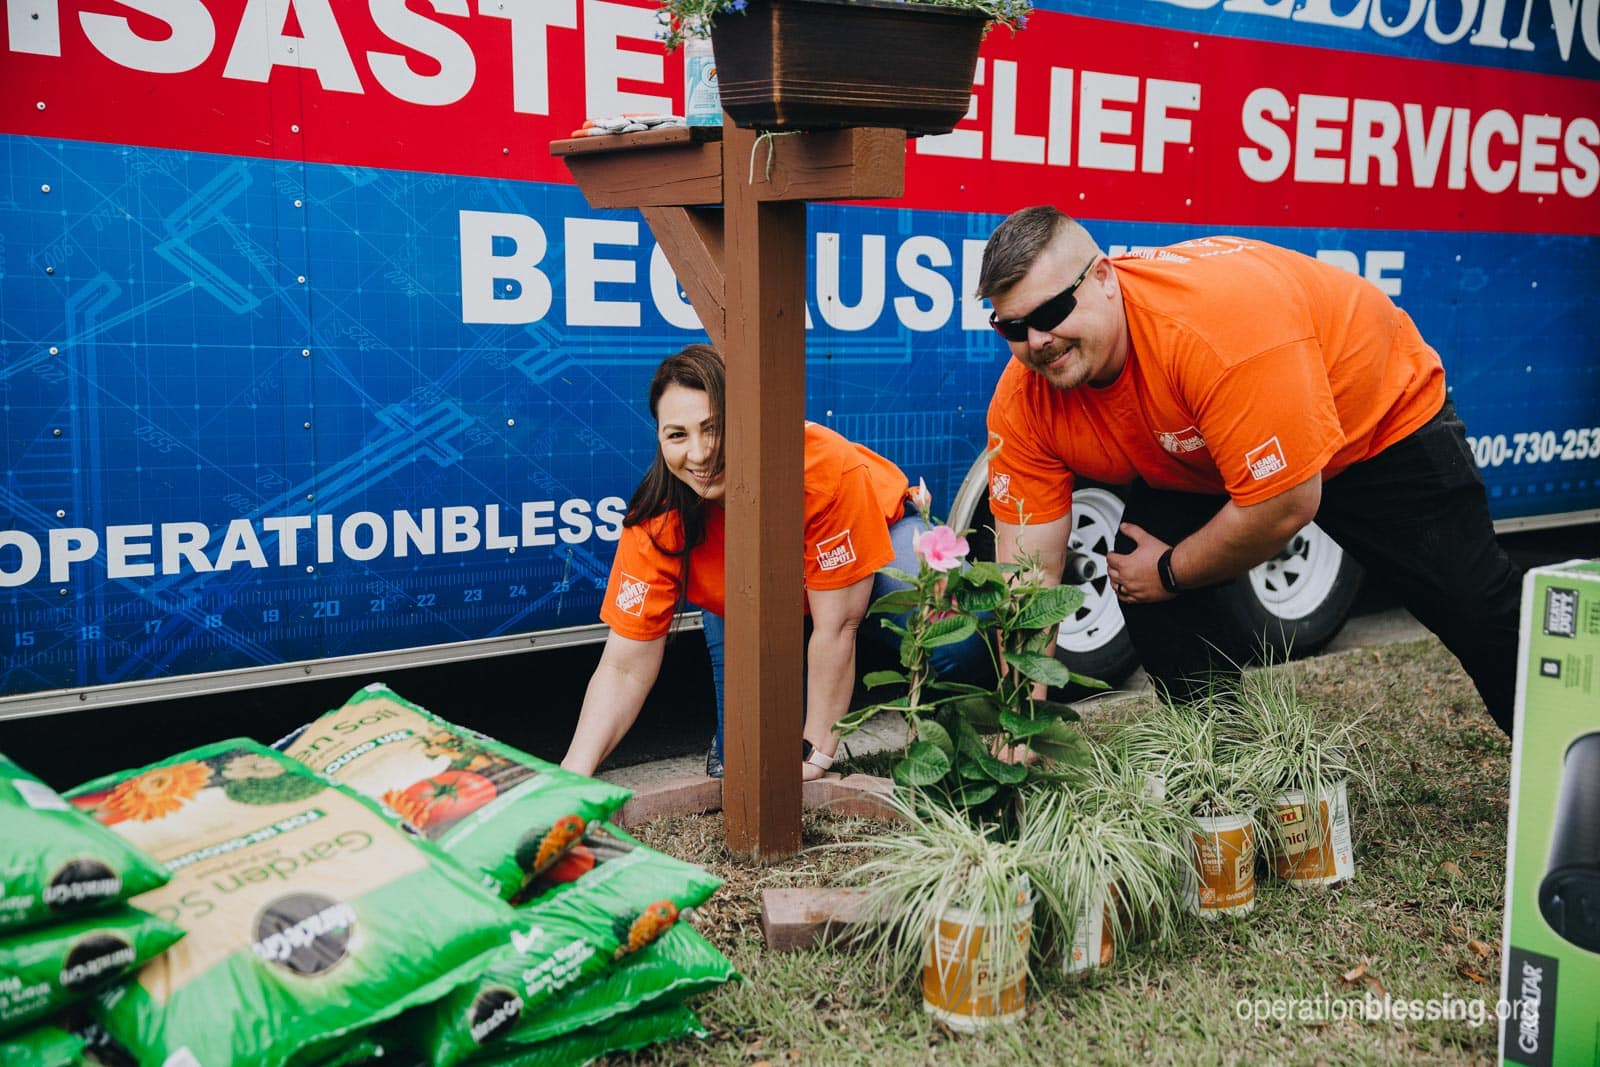 The Home Depot Foundation and Operation Blessing worked together to renovate the home of flood victims.